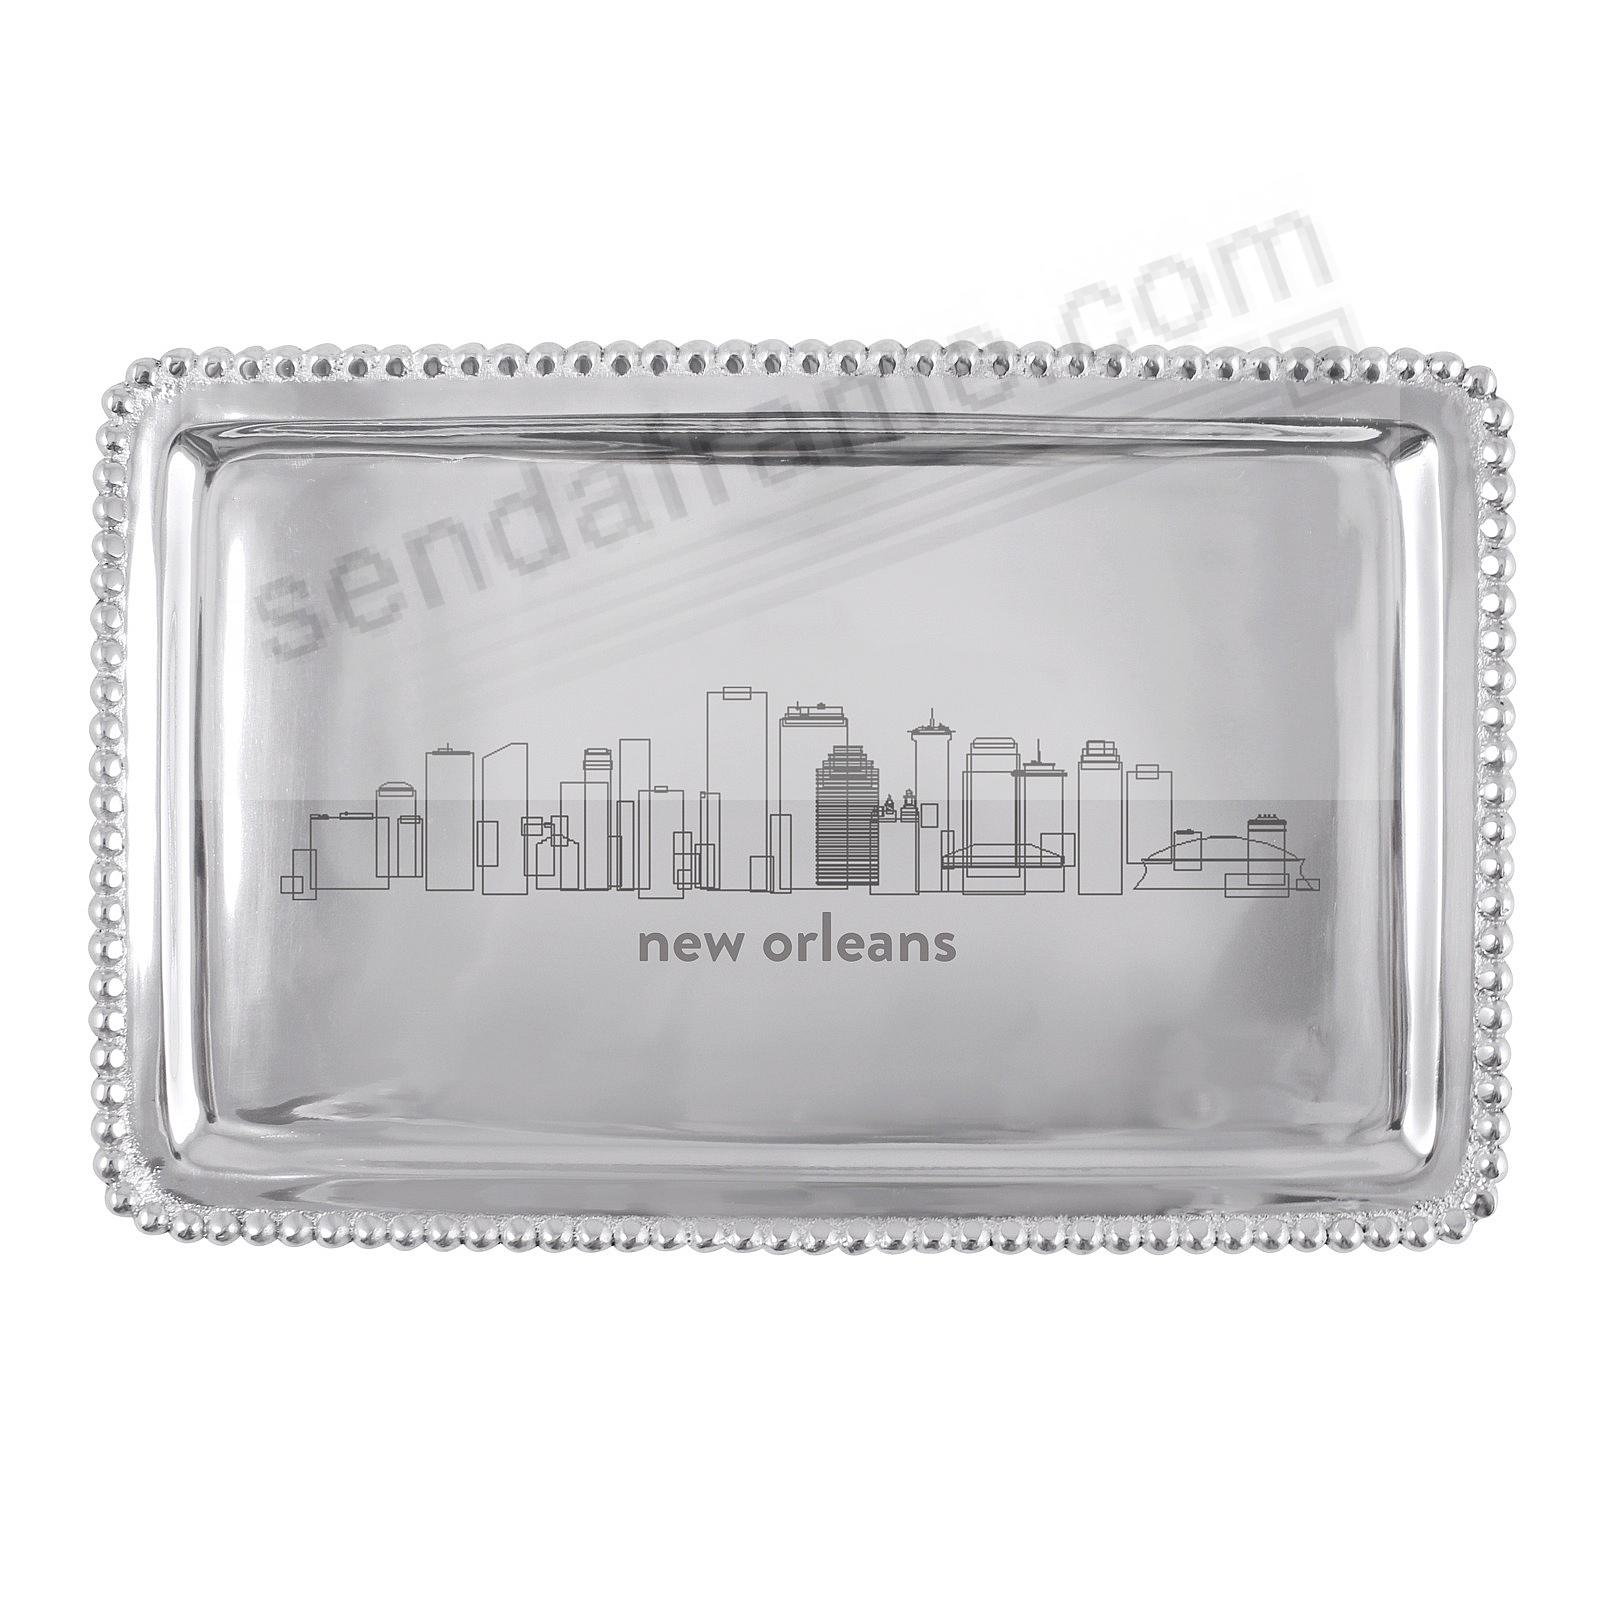 The NEW ORLEANS-LA CITYSCAPE BEADED BUFFET TRAY crafted by Mariposa®